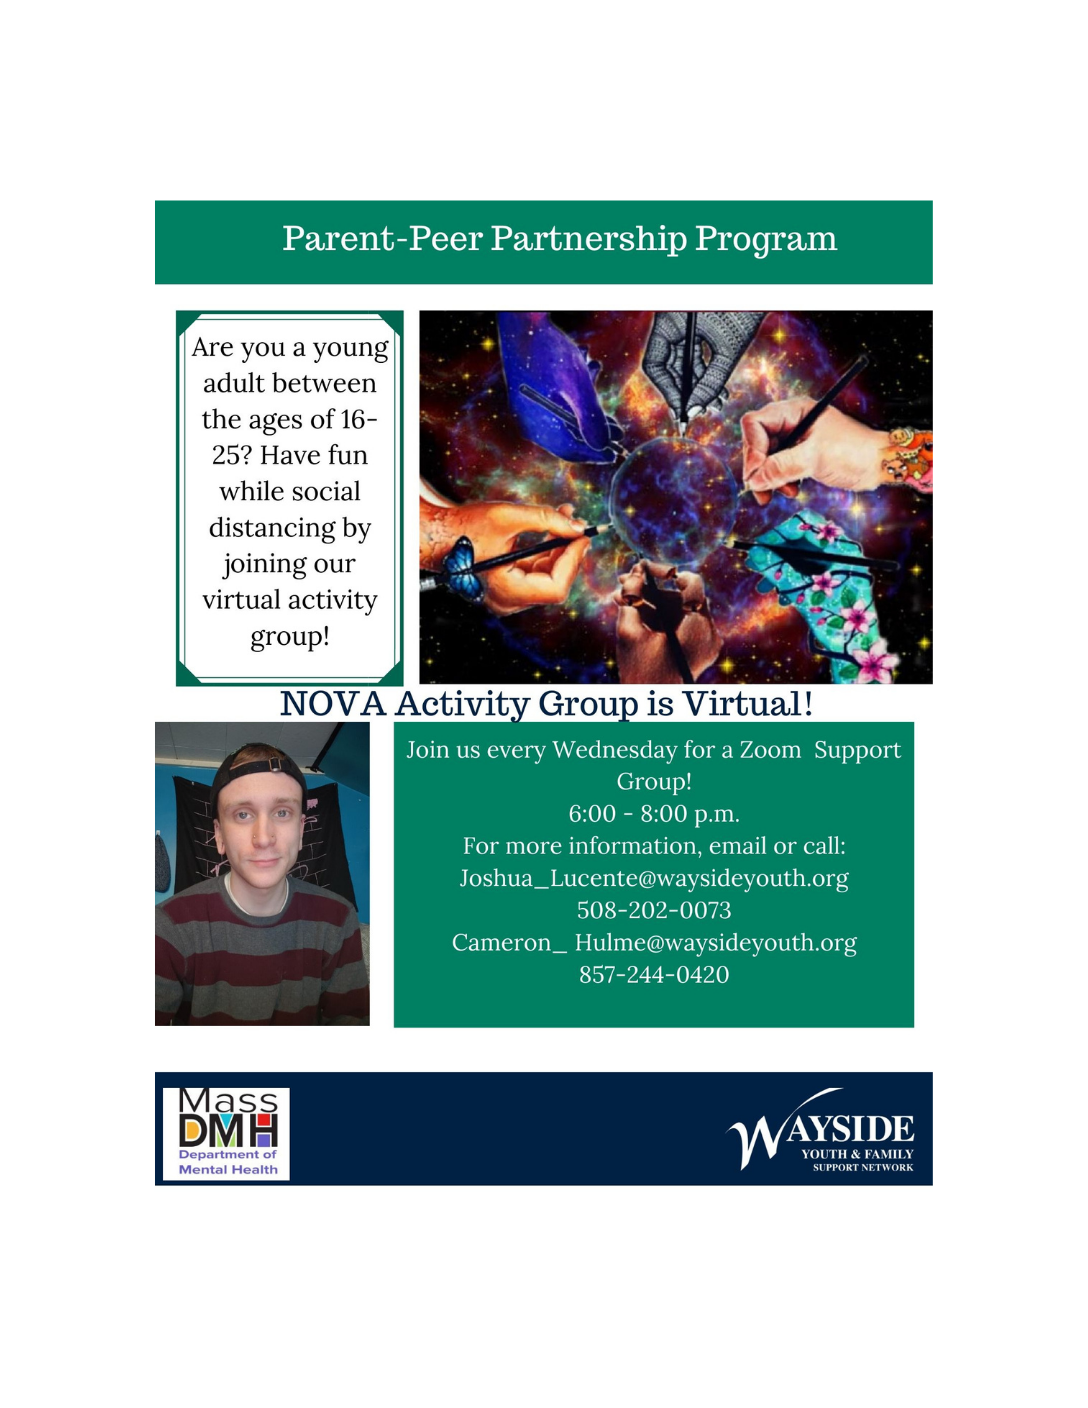 NOVA Activity Group: Wayside Youth & Family Support Network (Virtual Young Adult Support Group 16-25) Framingham